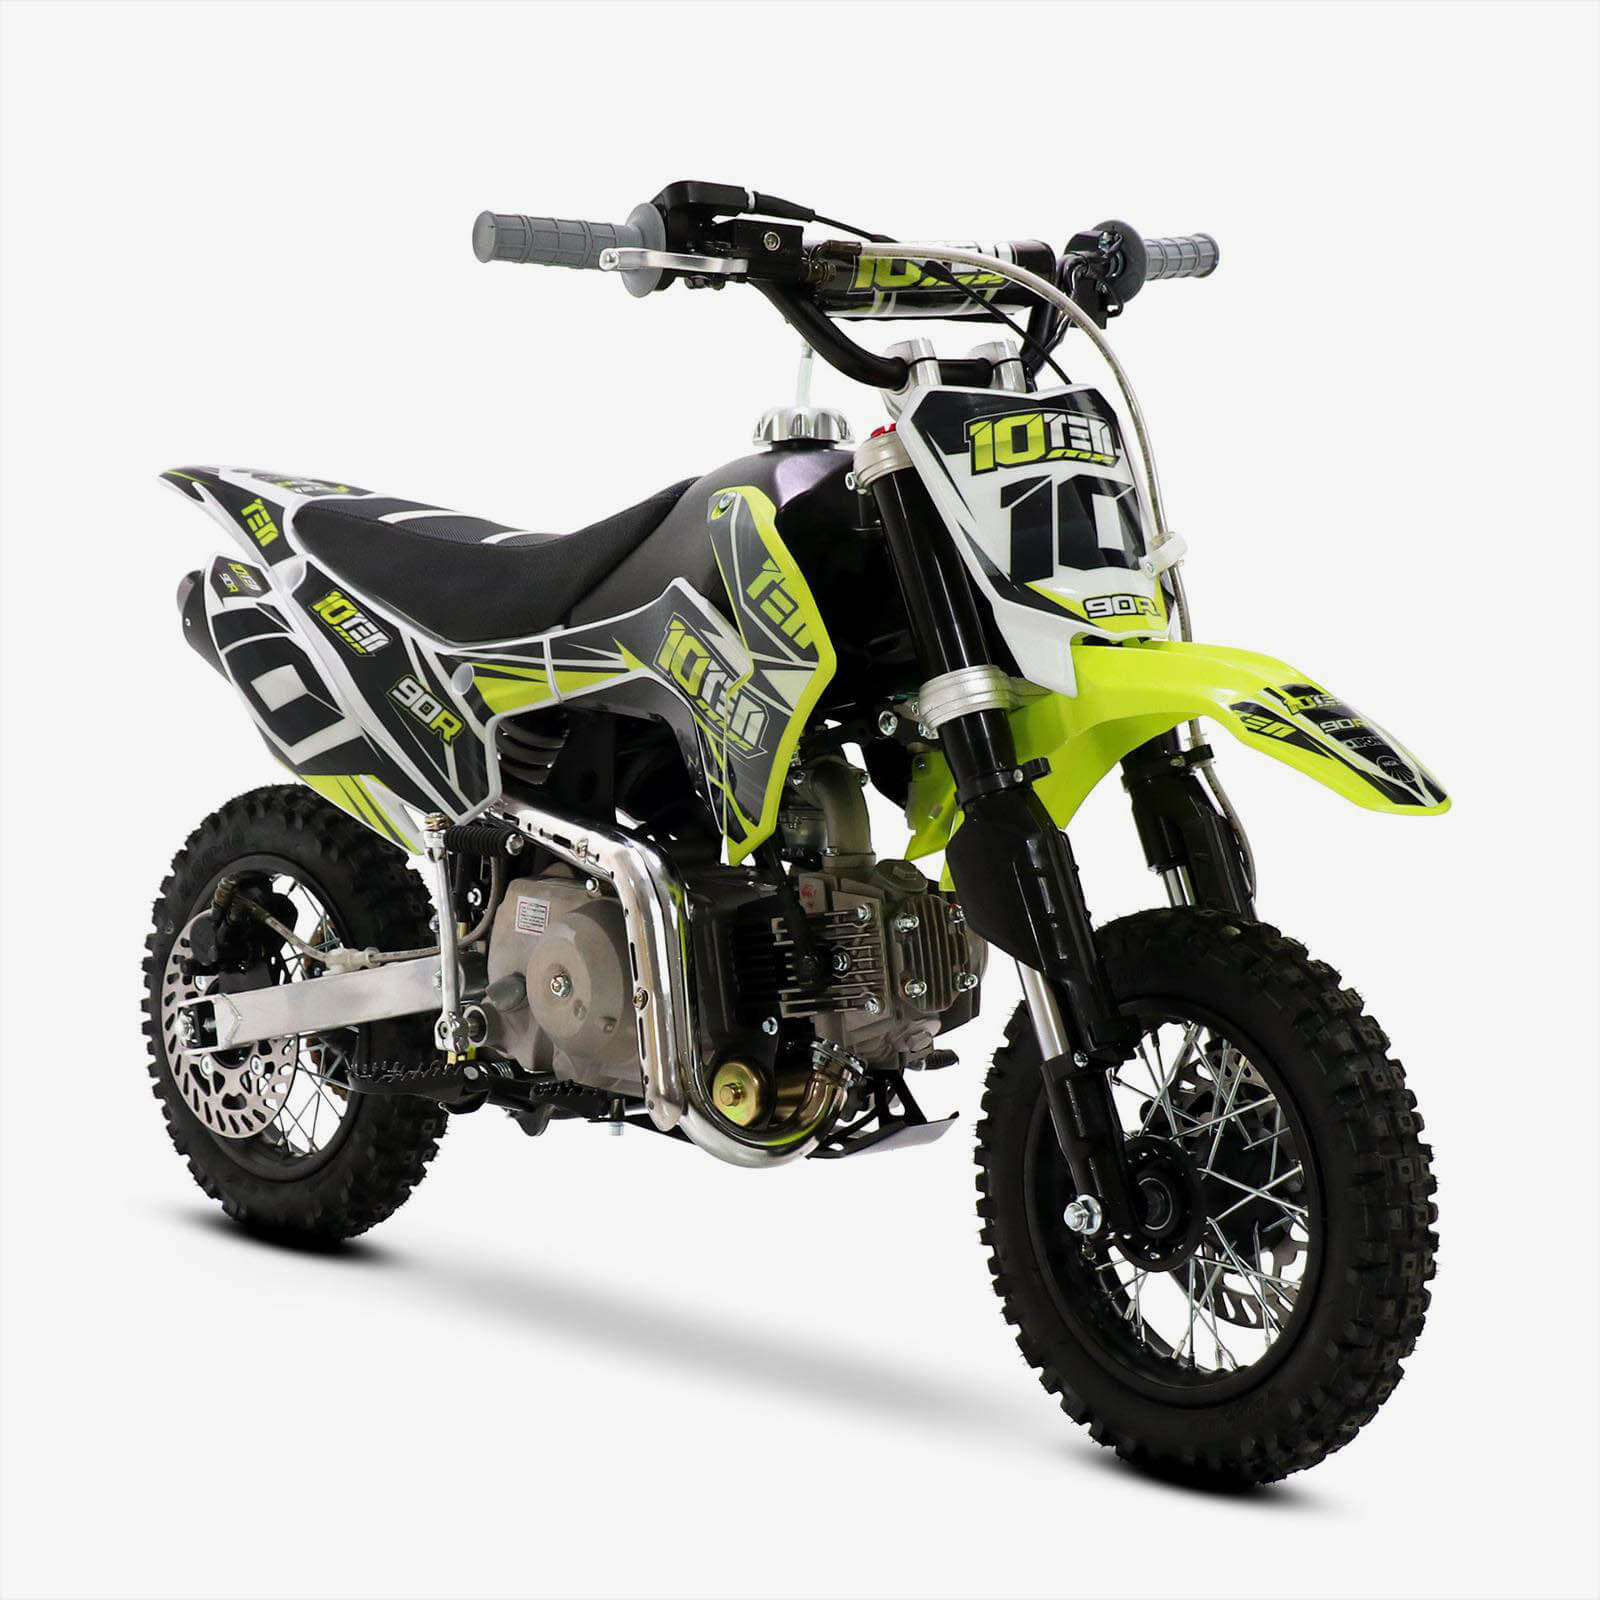 10TEn 10TEN 90R Junior Dirt Bike